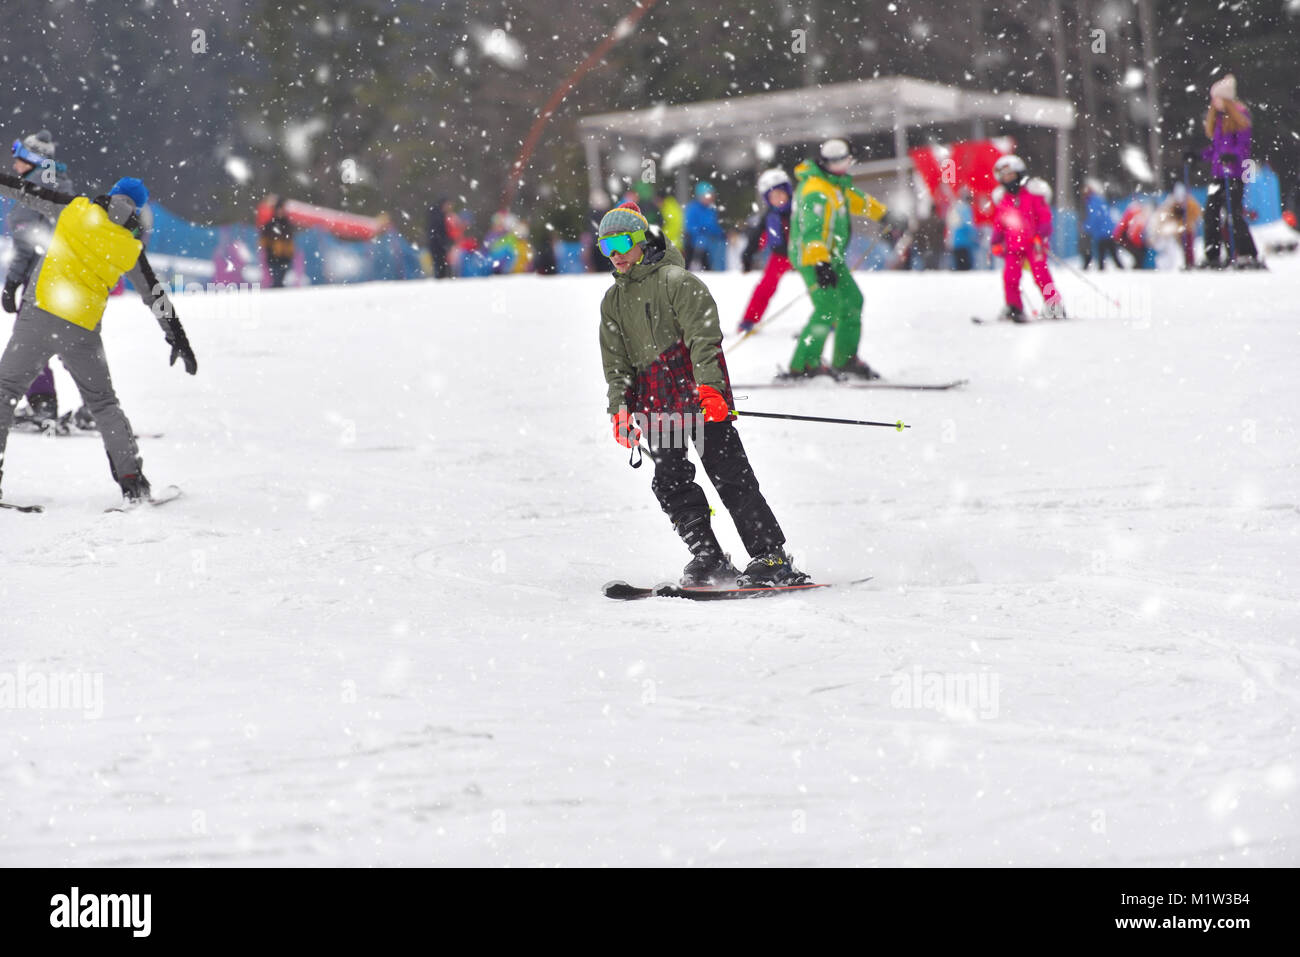 Young man on skiing downhill with people in the background, snowy day - Stock Image